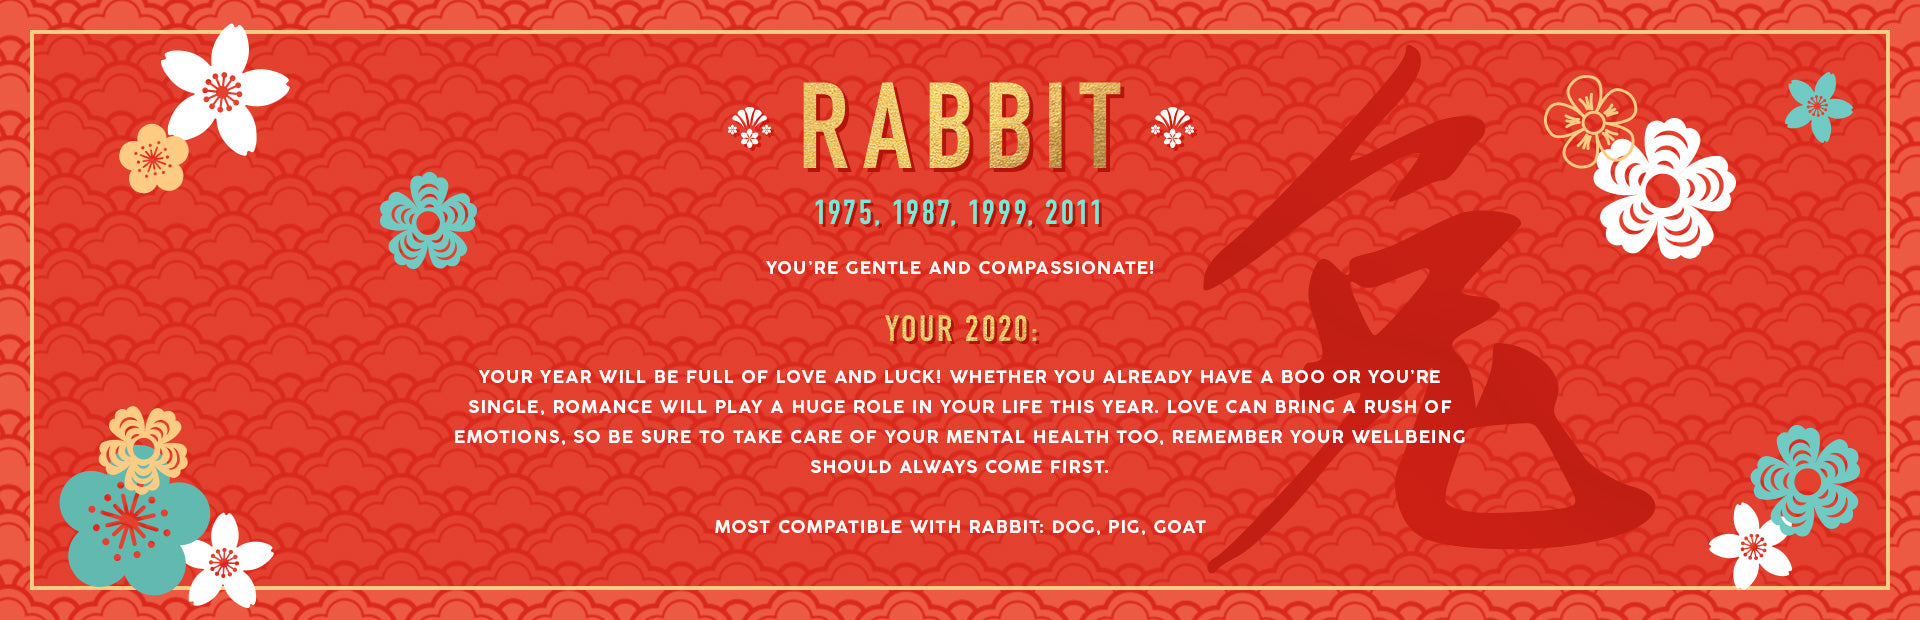 Rabbit Lunar New Year Collection Banner Image